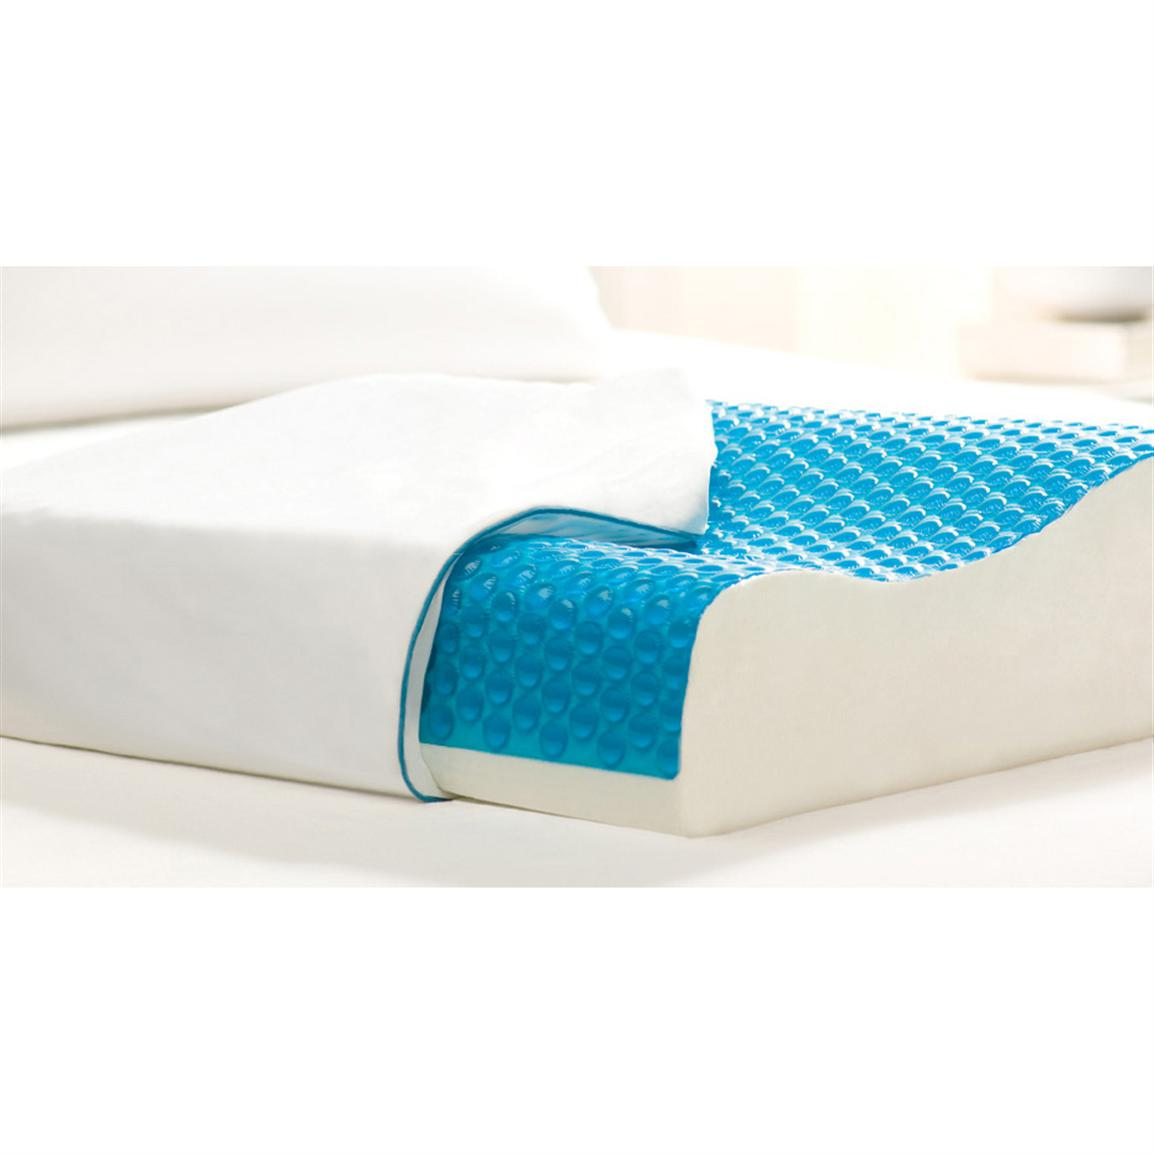 Hydraluxe Memory Foam Amp Hydraluxe Gel Contour Pillow